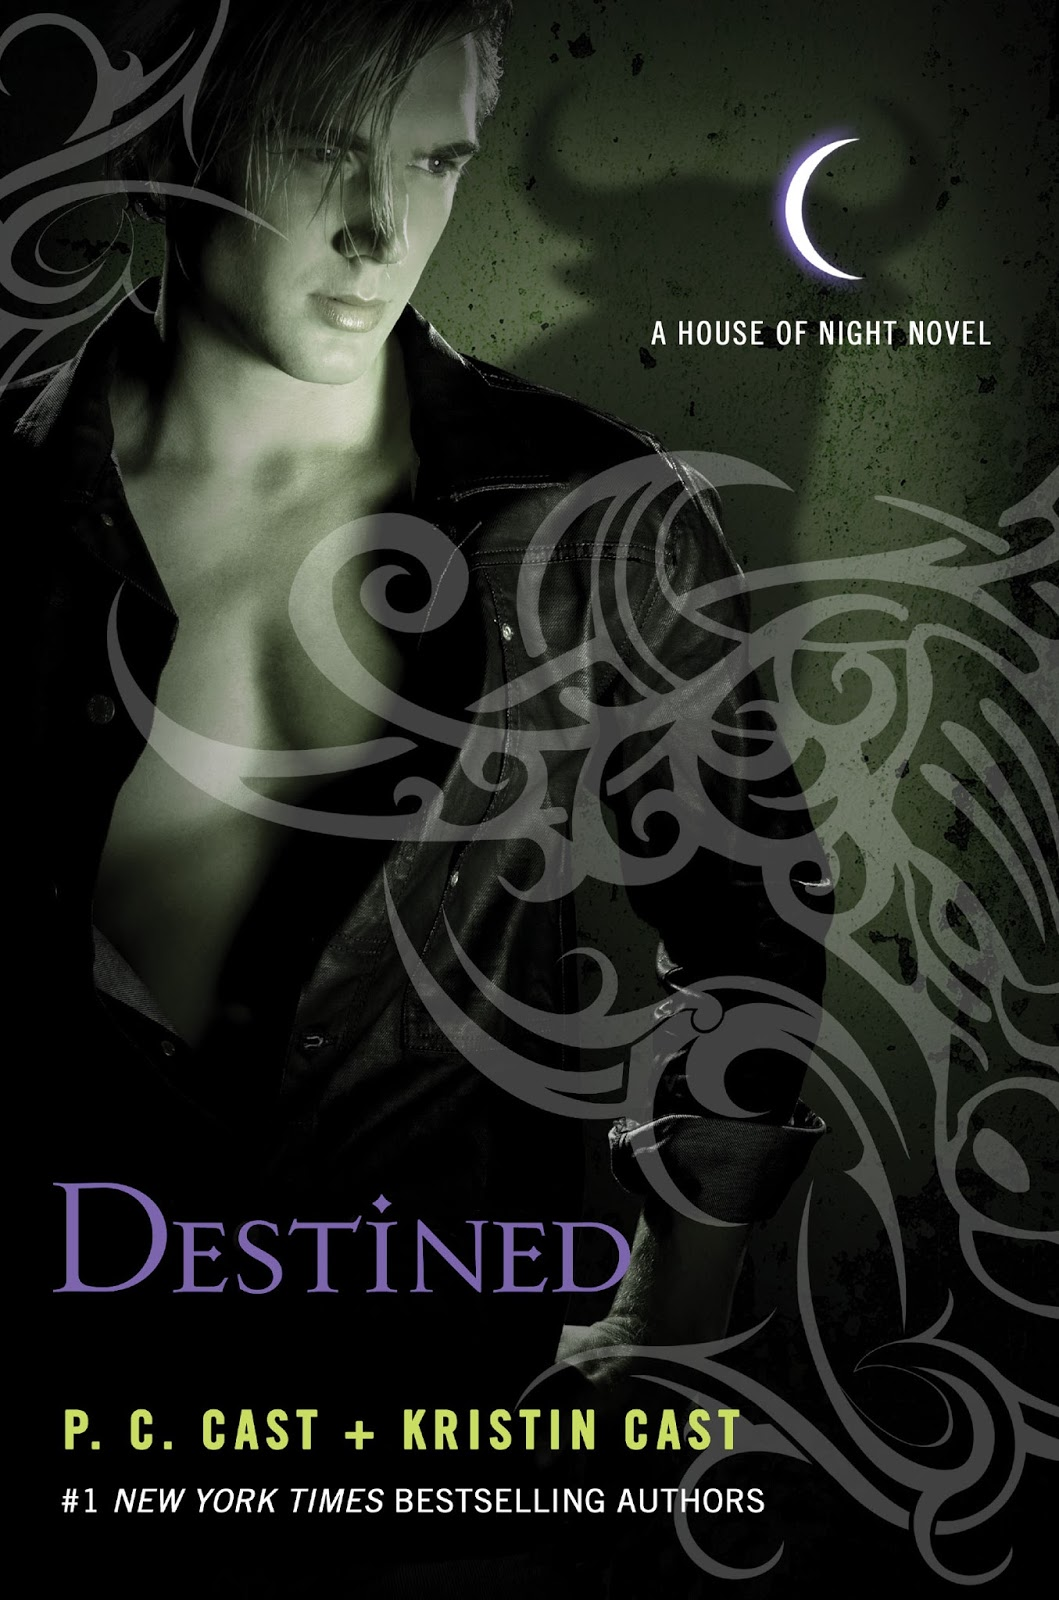 Fangs For The Fantasy: Destined (House of Night #9) by P C